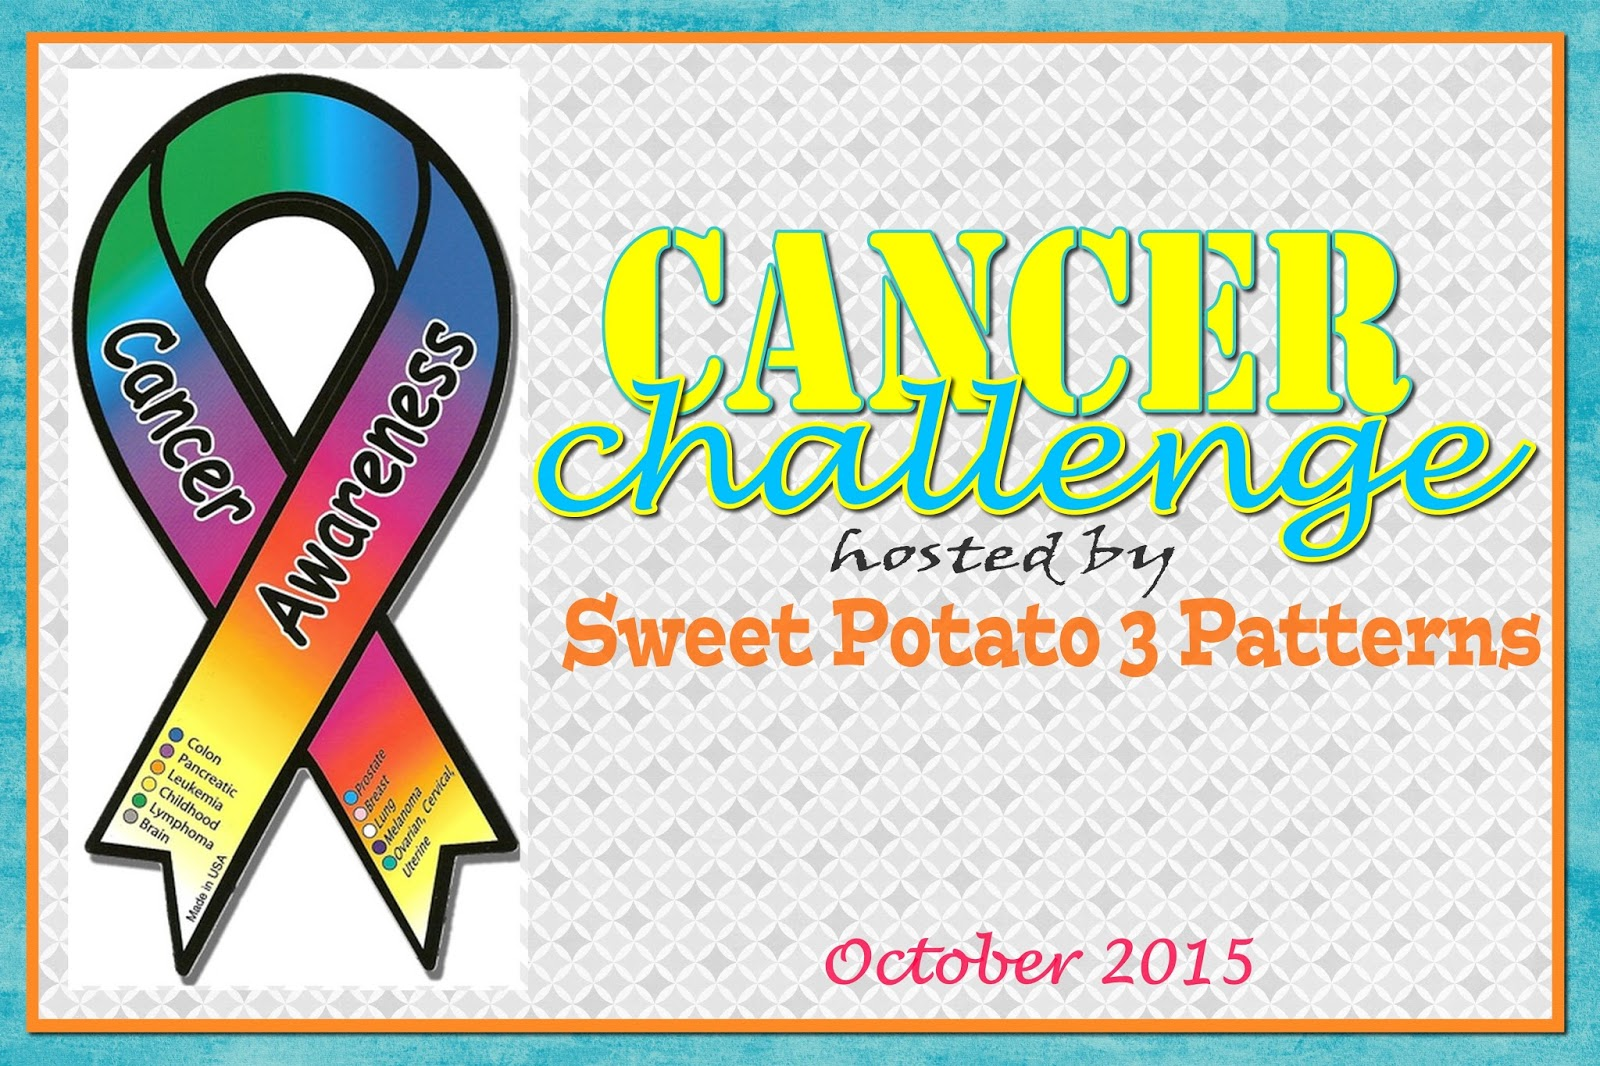 Cancer challenge 2015 sweet potato 3 cancer challenge 2015 magicingreecefo Image collections